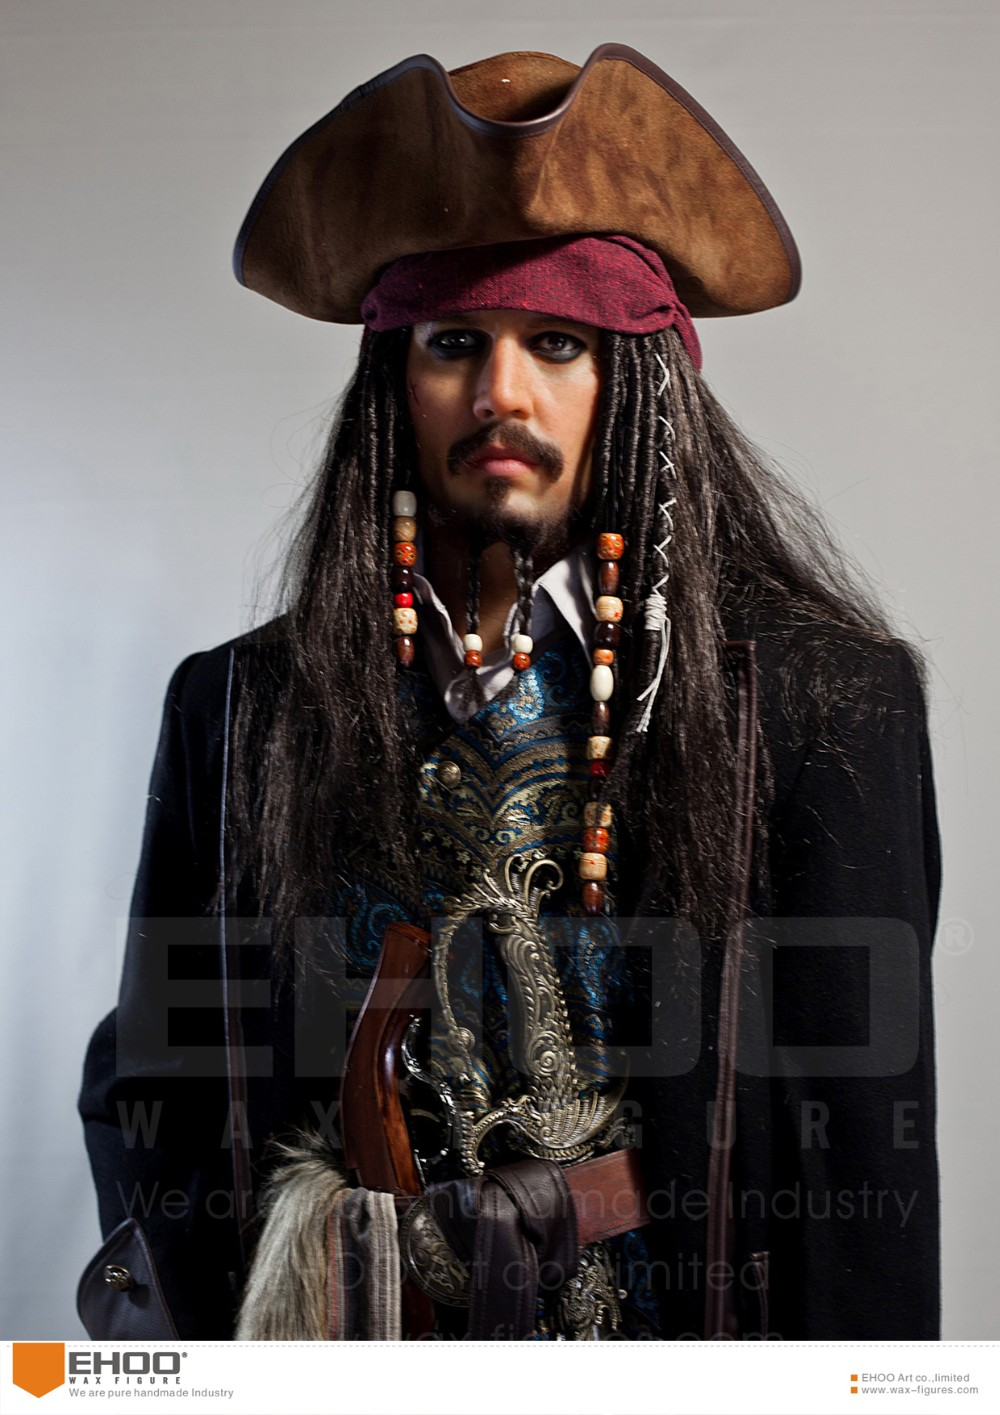 Best Actor Wax Mannequin Golden Globe Award Gainer Silicone Figure Caribbean Pirates Wax Statue in Real Life